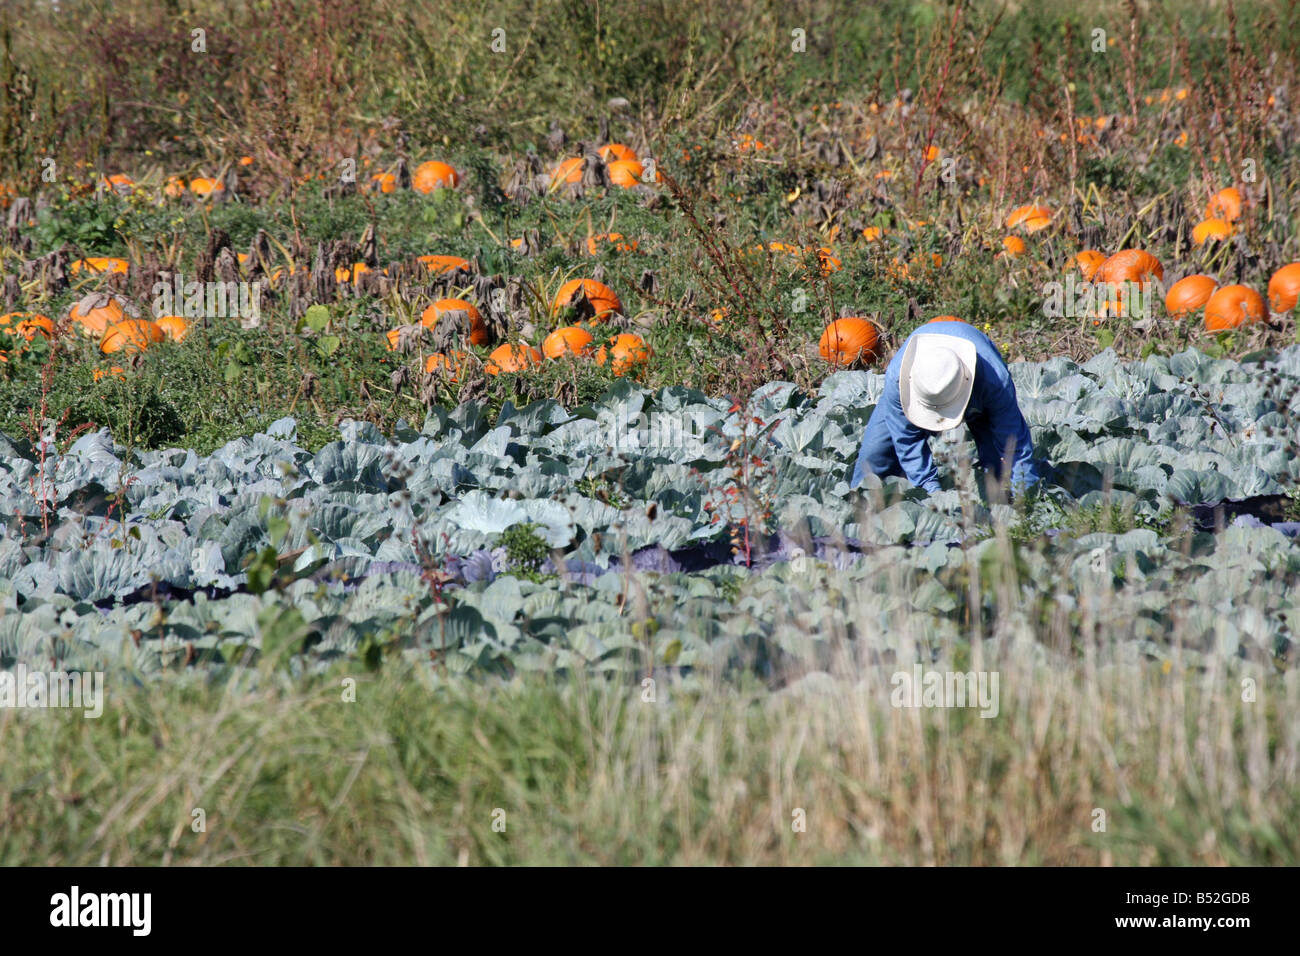 A migrant worker picking cabage during fall harvest time in Wisconsin Stock Photo